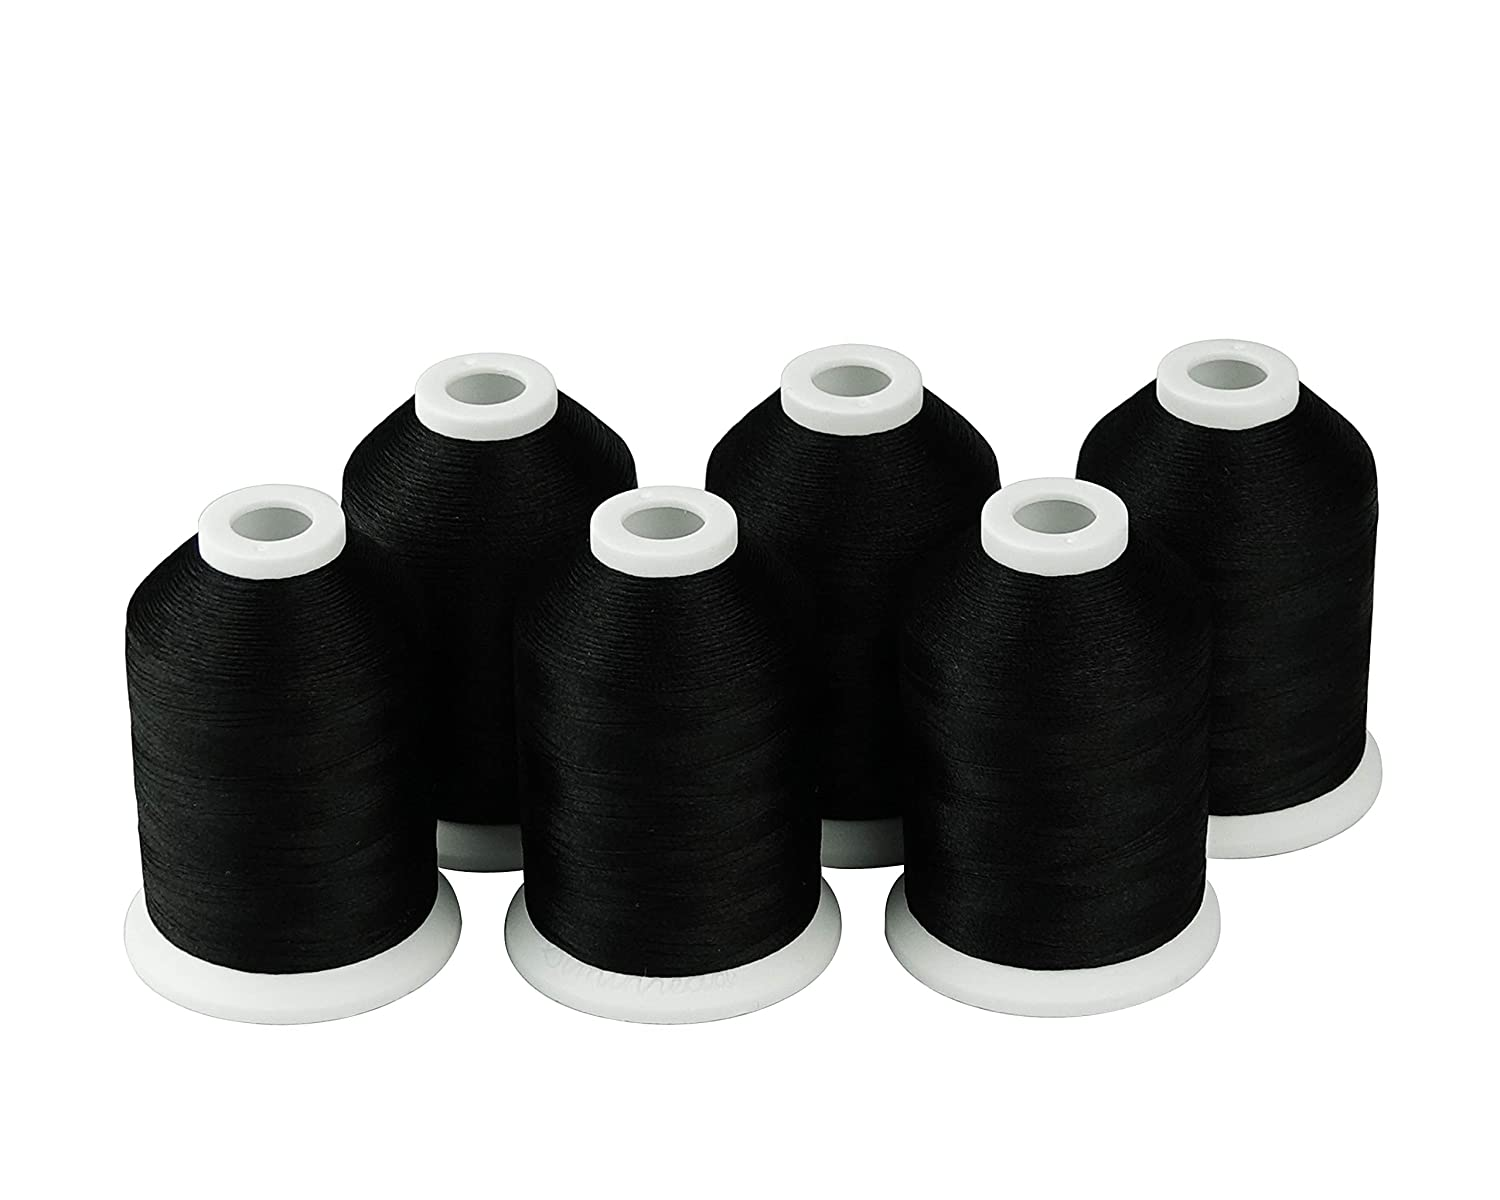 Polyester Machine Embroidery Threads for Brother Babylock Janome Singer Pfaff Husqvarna Bernina Embroidery and Sewing Machines Simthread 6 Black 1000M 1100Y